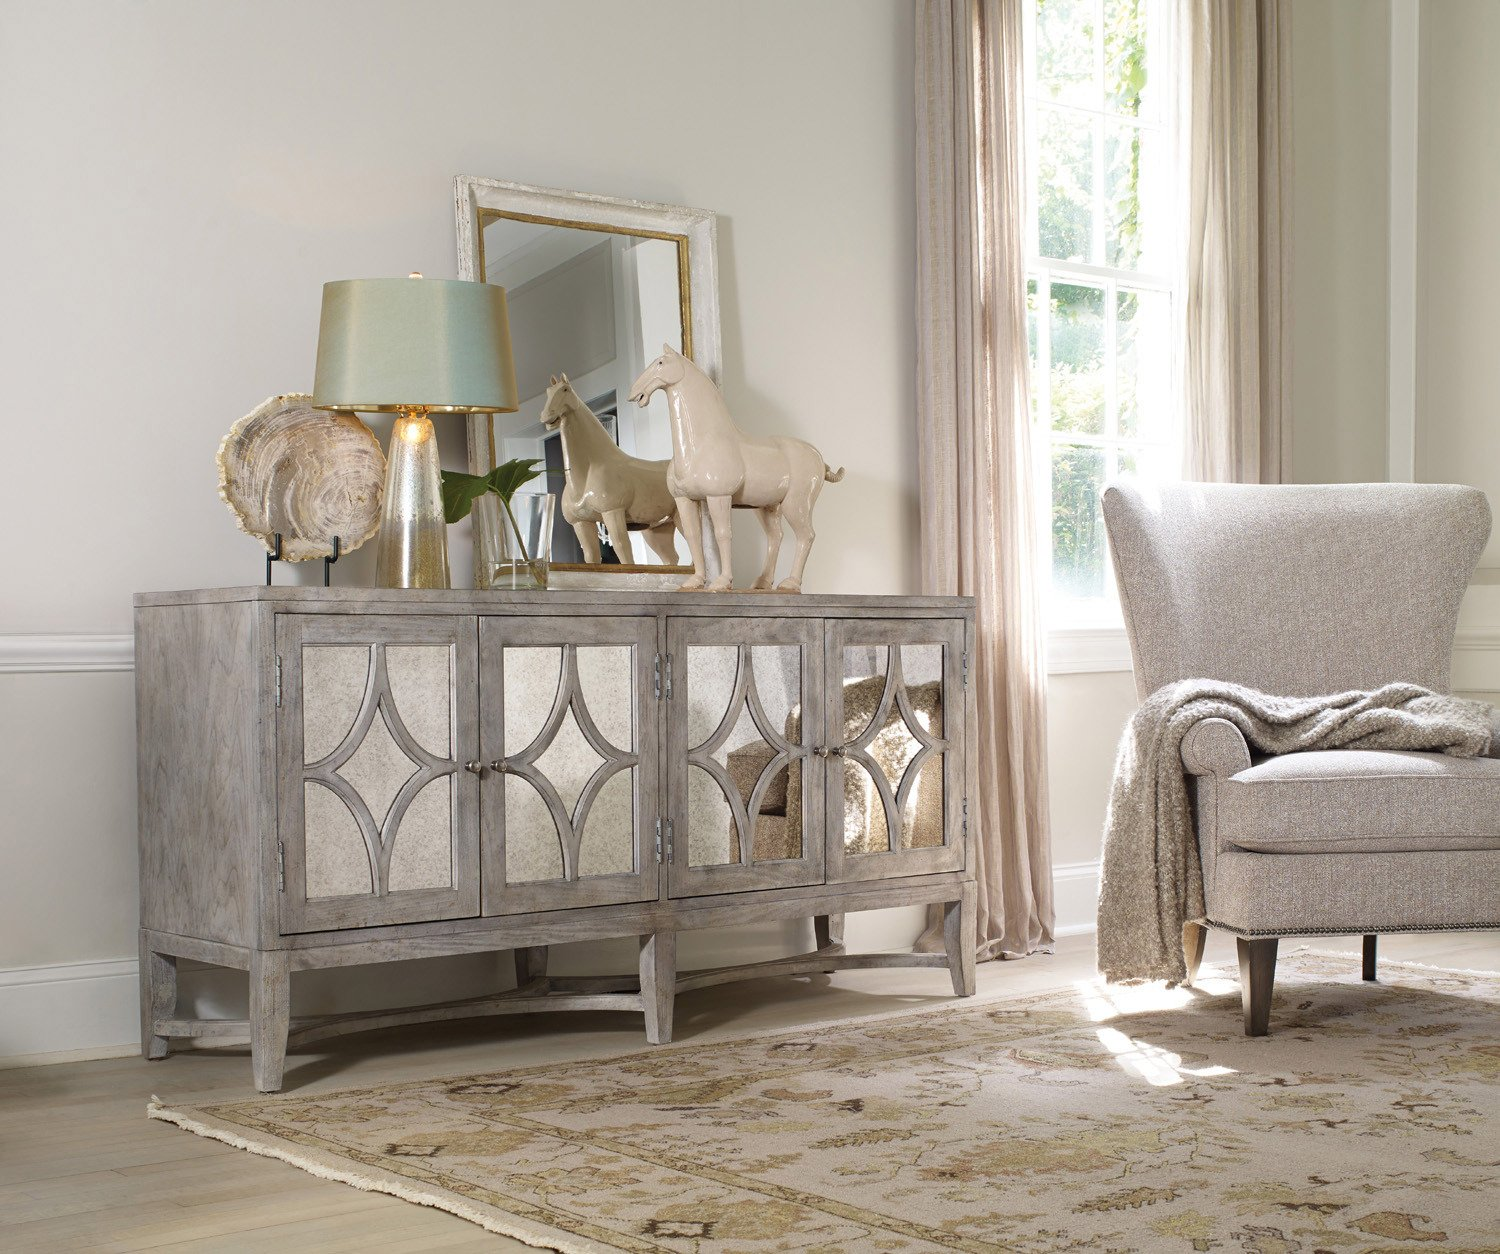 Superb Amazon.com: Hooker Furniture Melange 4 Door Diamante Console In Weathered  Gray: Kitchen U0026 Dining